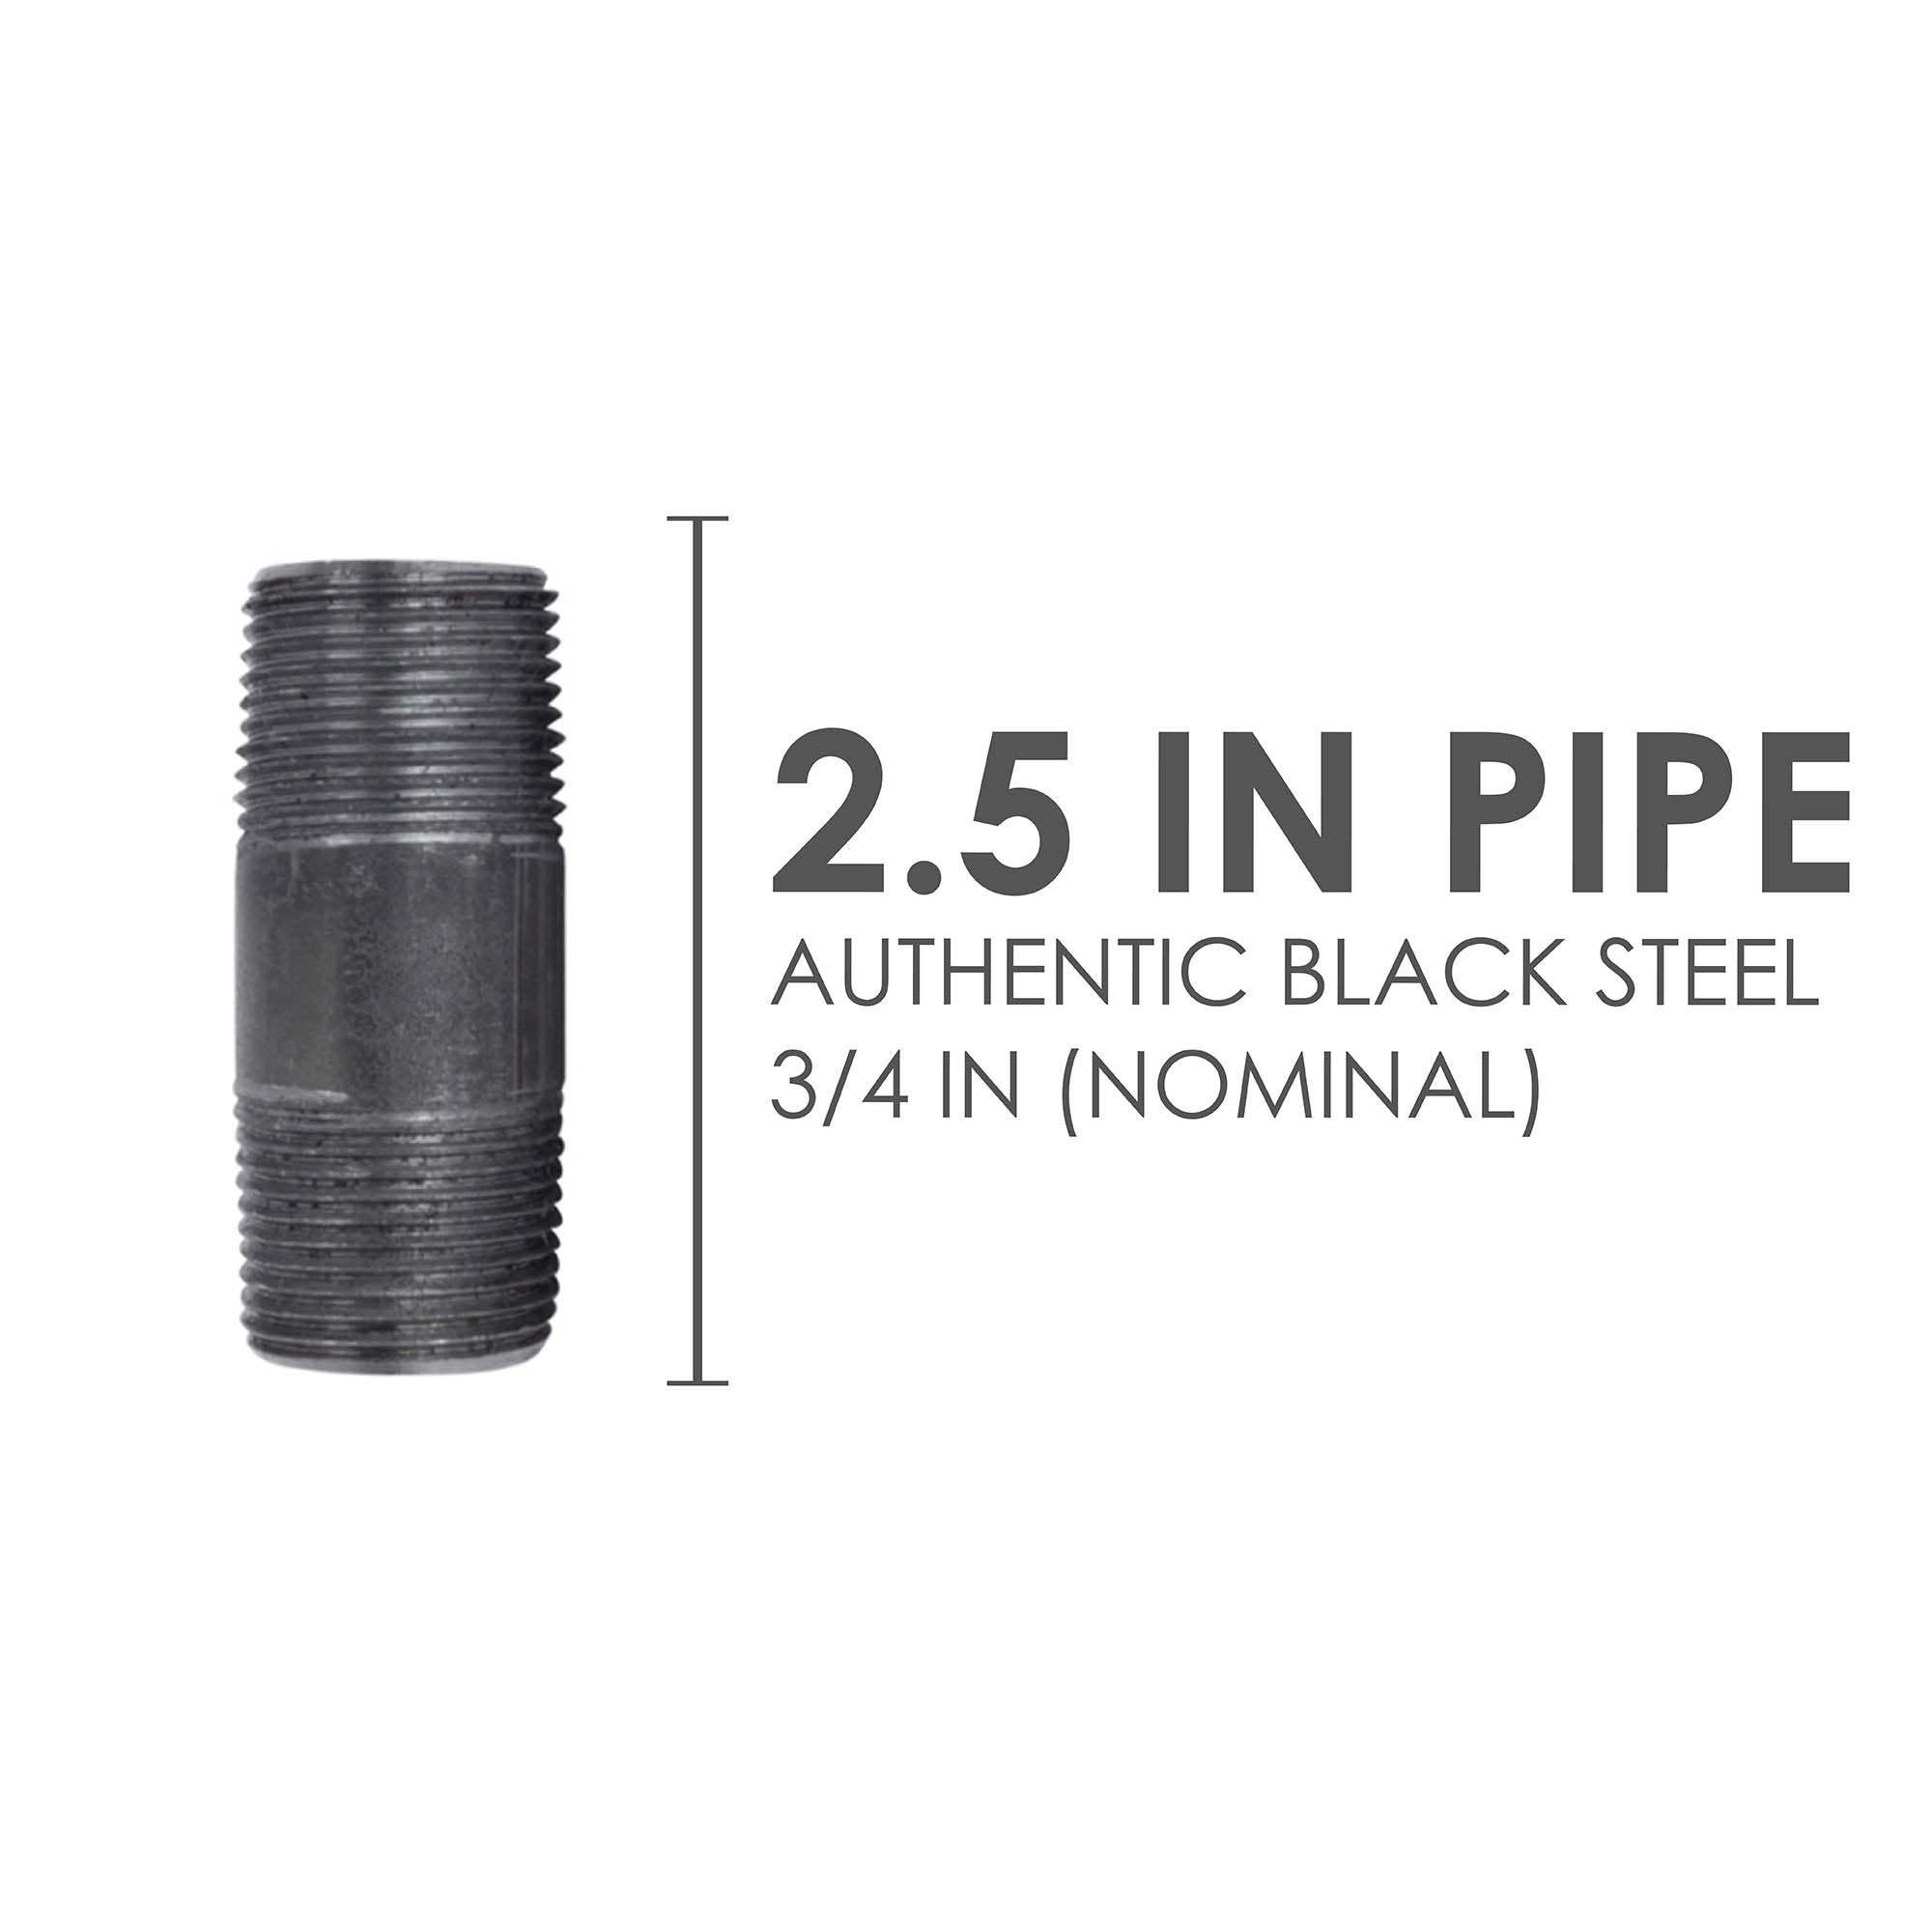 3/4 In X 2 1/2 In Black Pipe - Pipe Decor